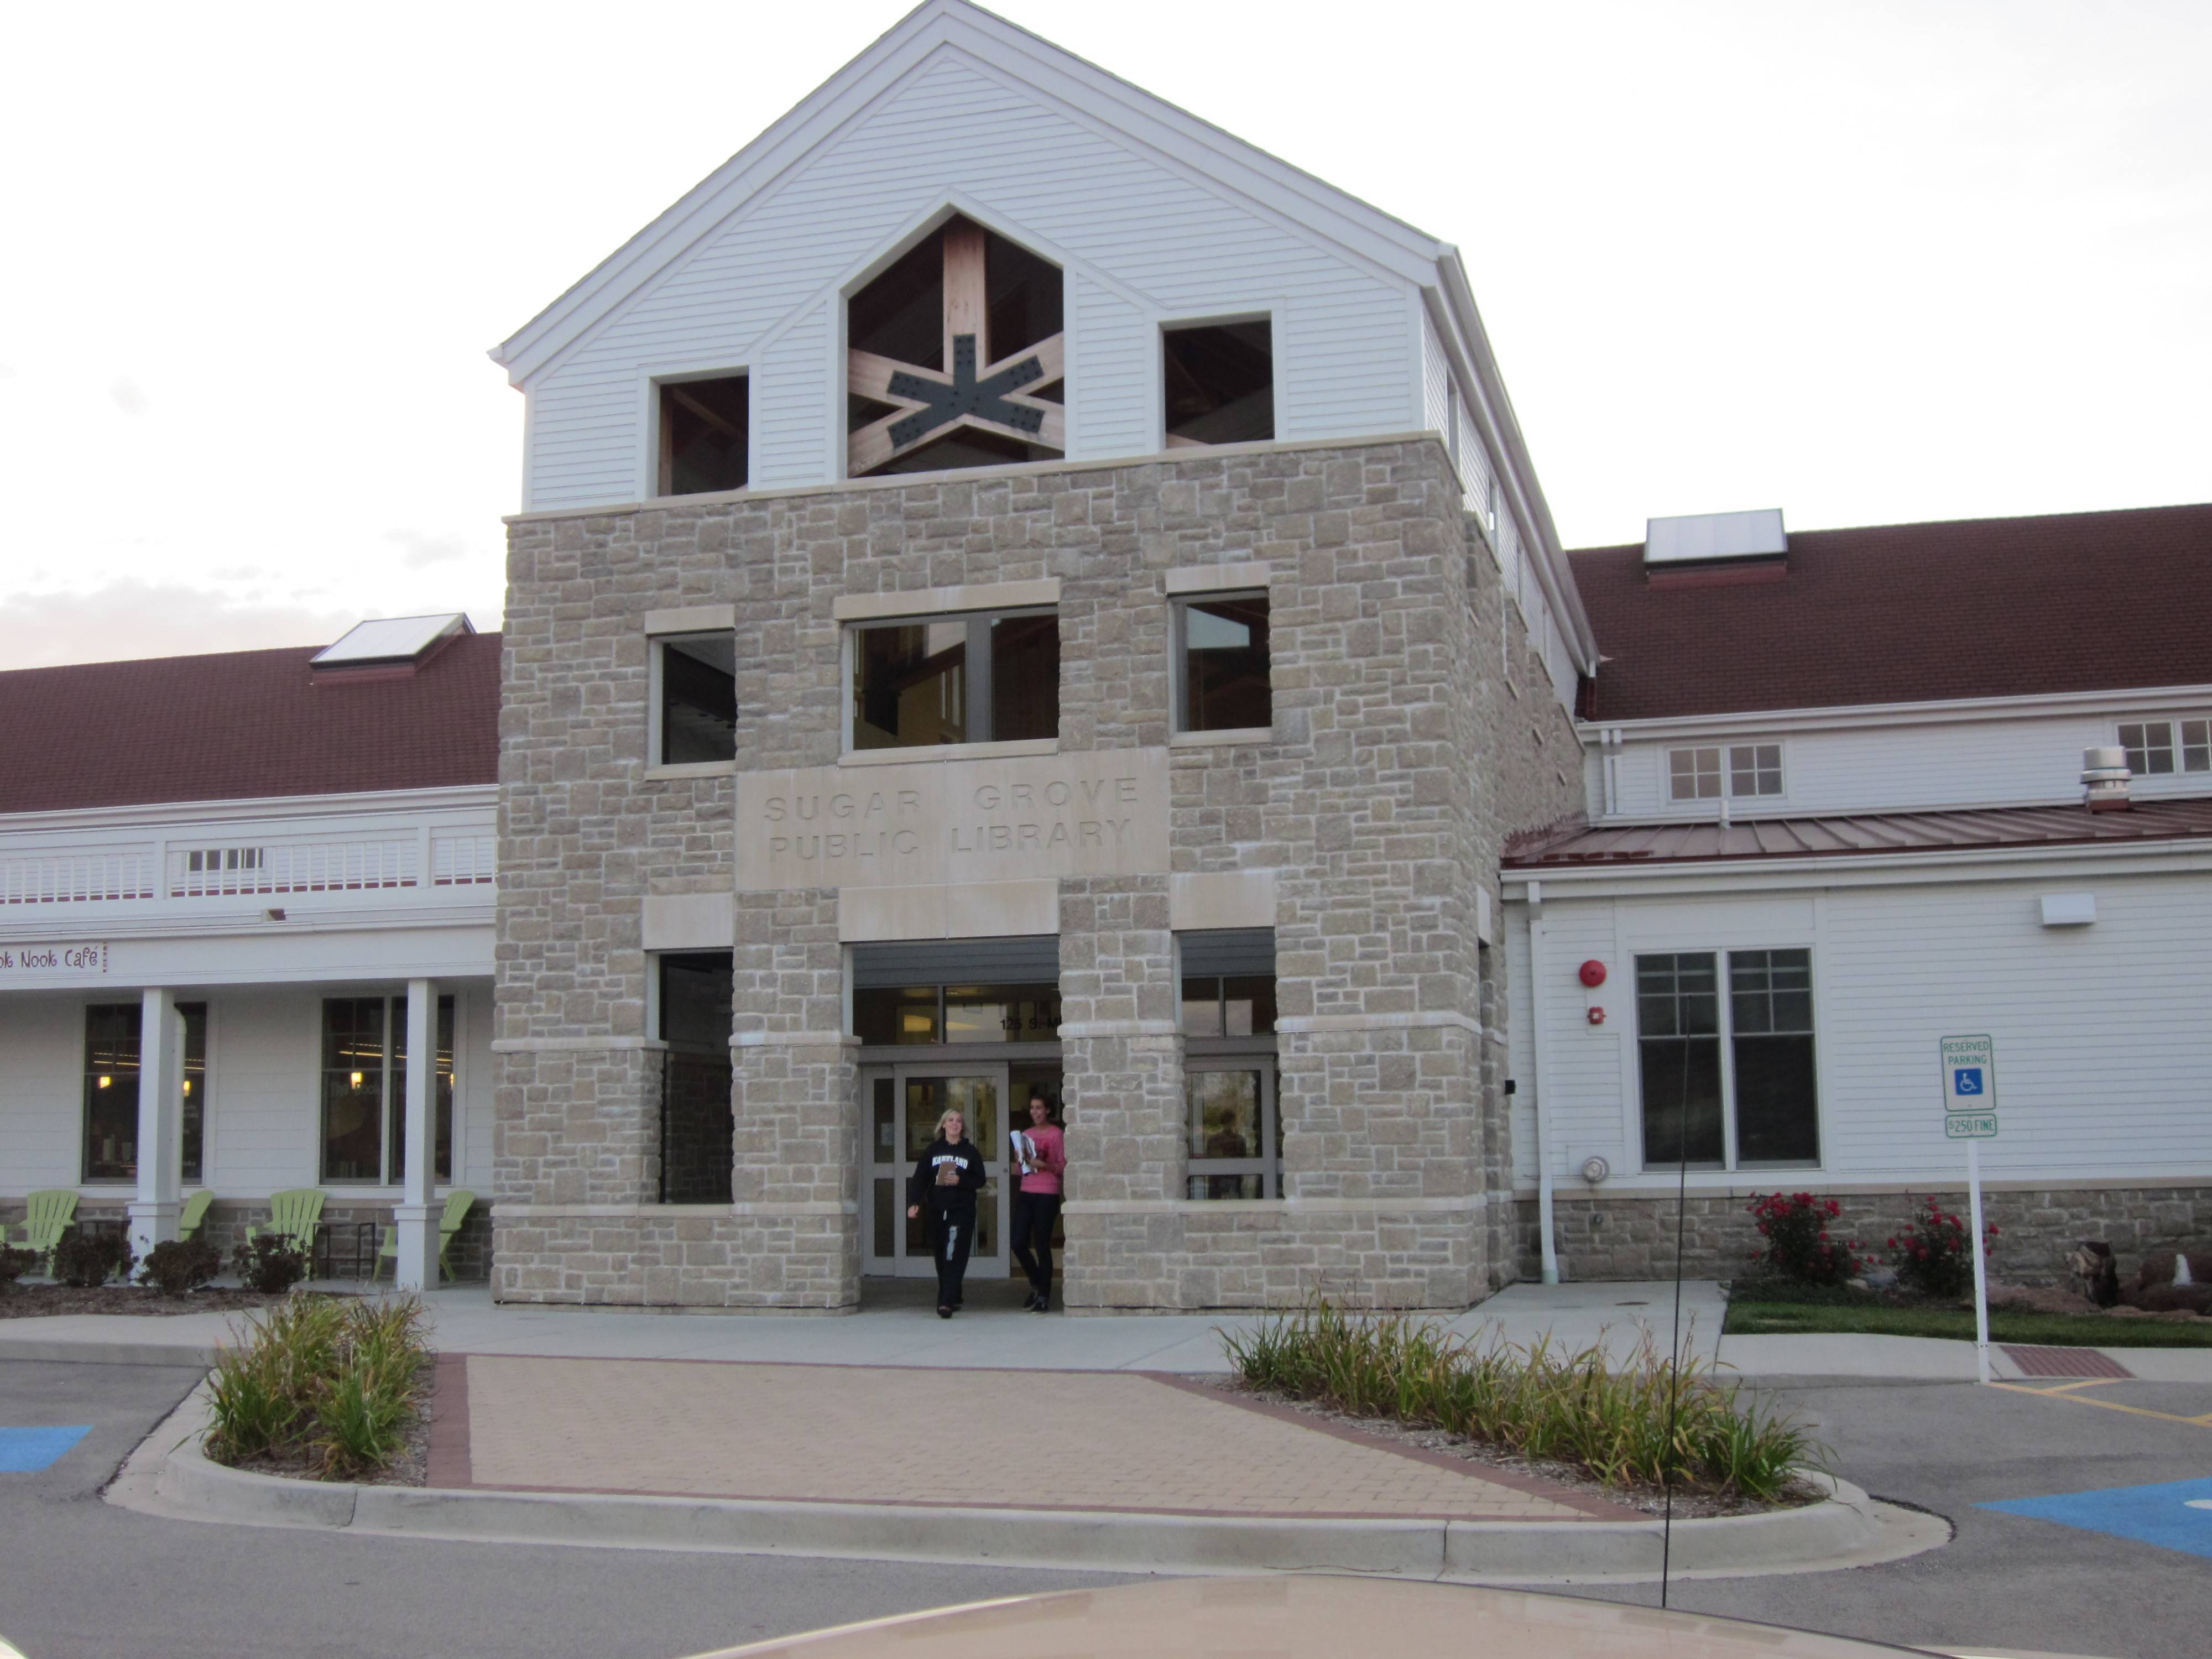 Where does Sugar Grove Library rank?